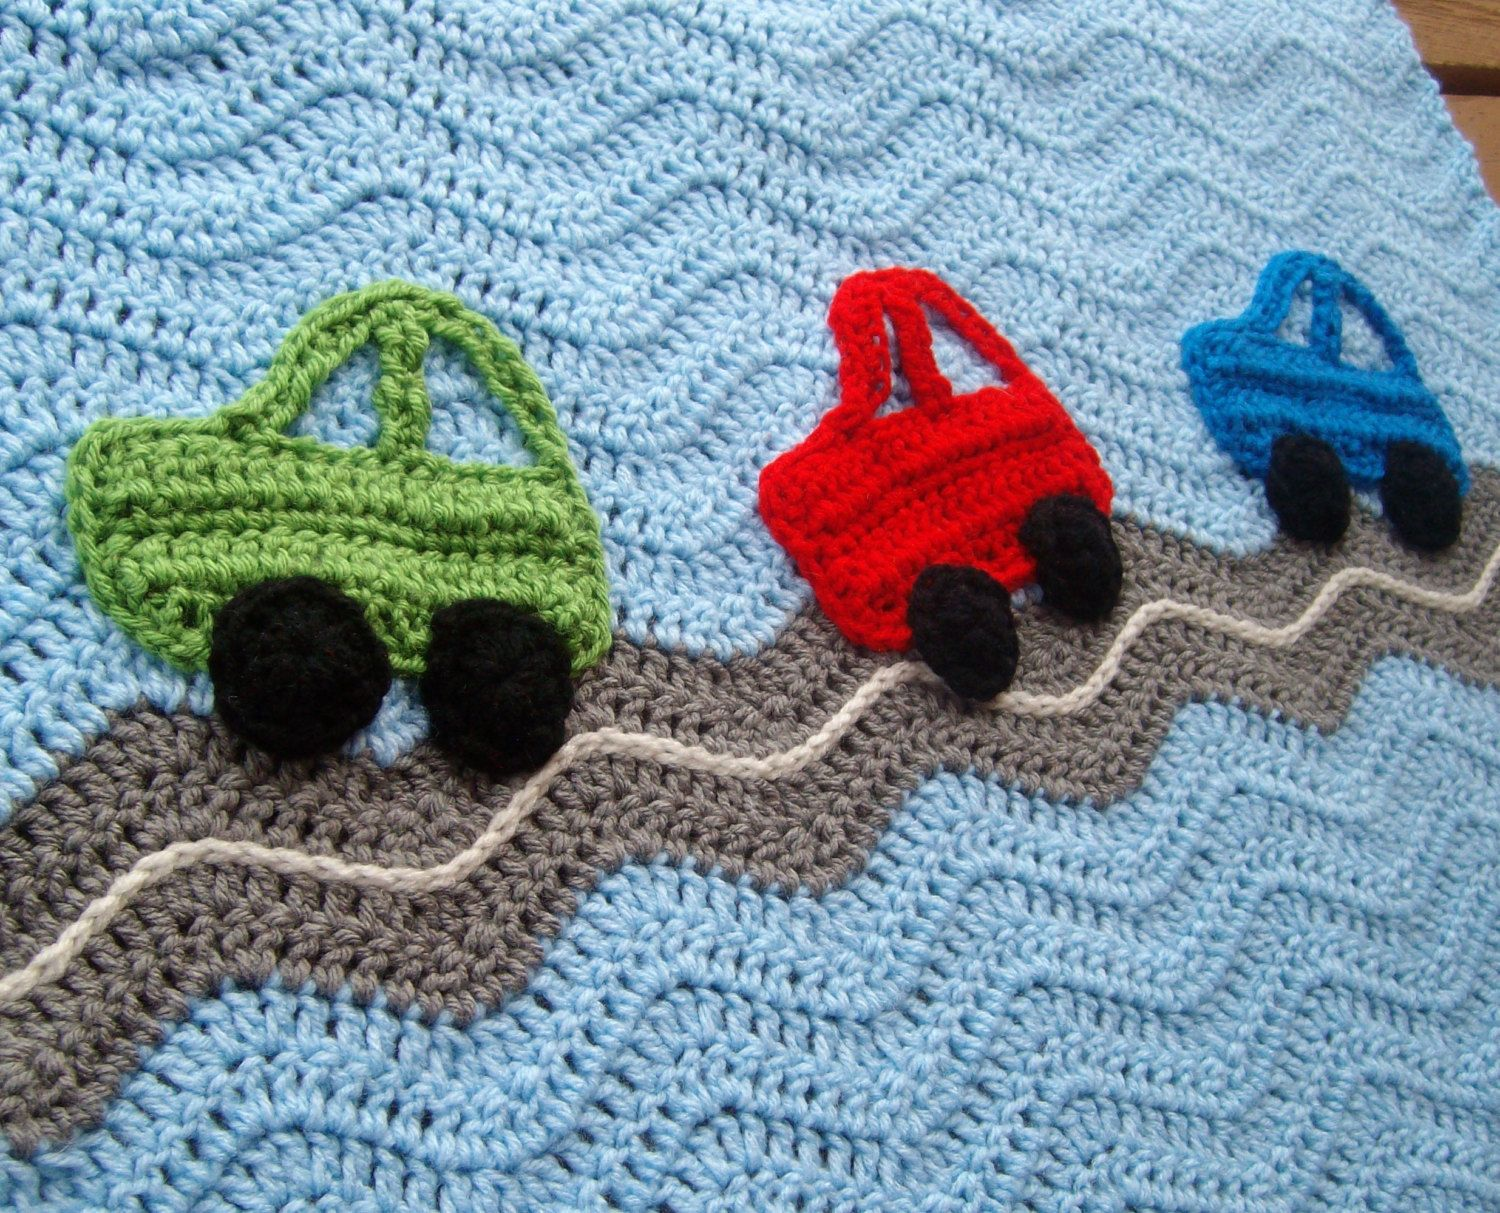 Crochet Race Car Baby Blanket Crochet Baby Blanket by puddintoes ...